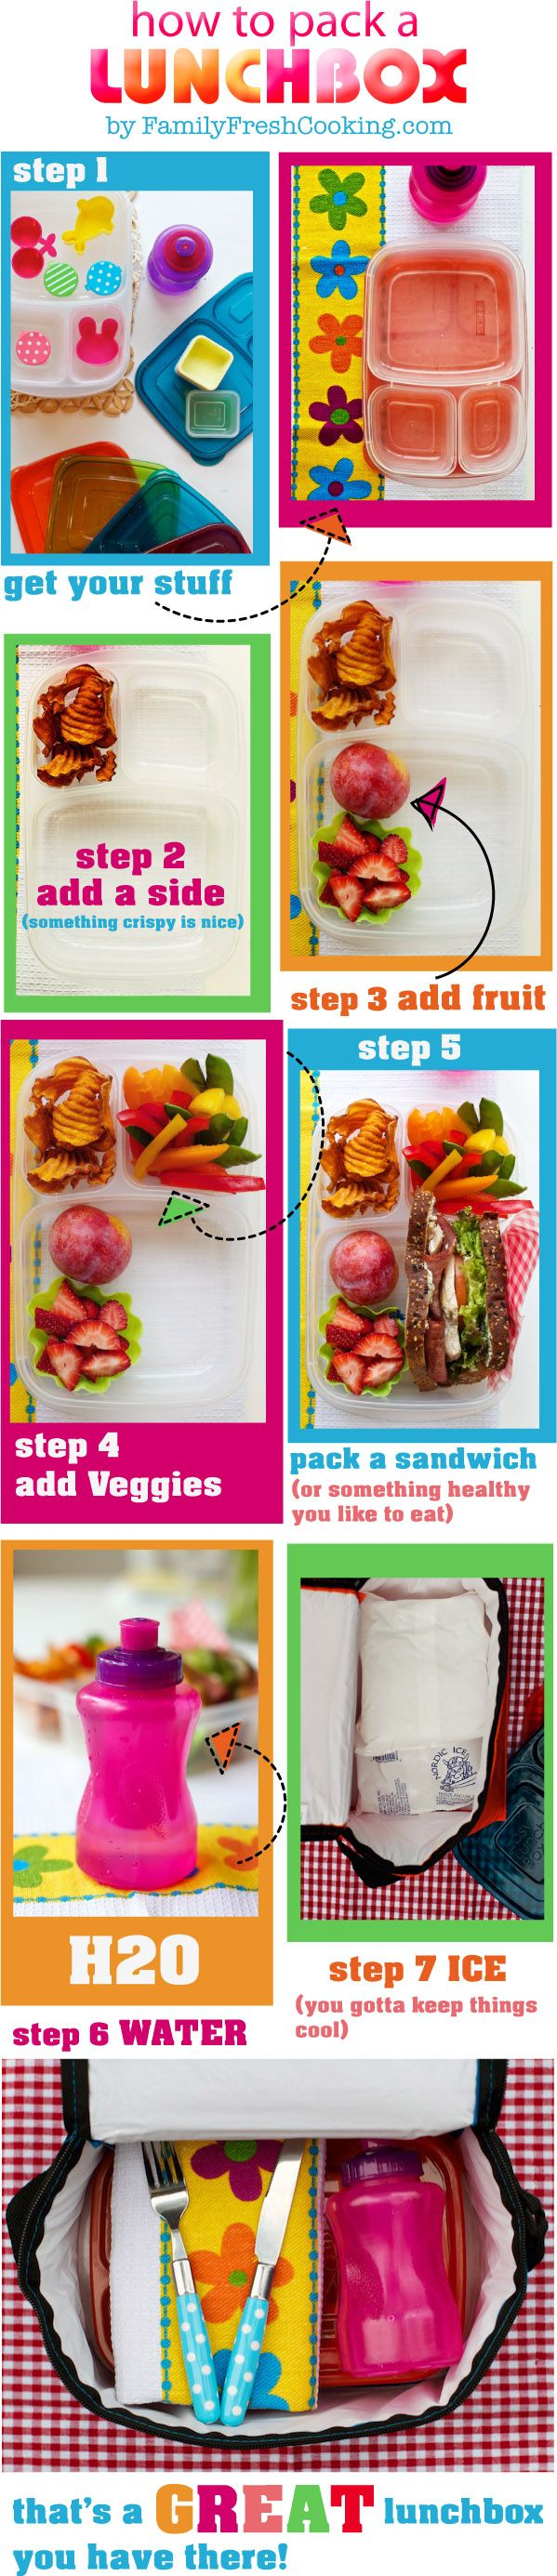 How to Pack a Lunchbox Quick, Easy and Healthy   with @EasyLunchboxes